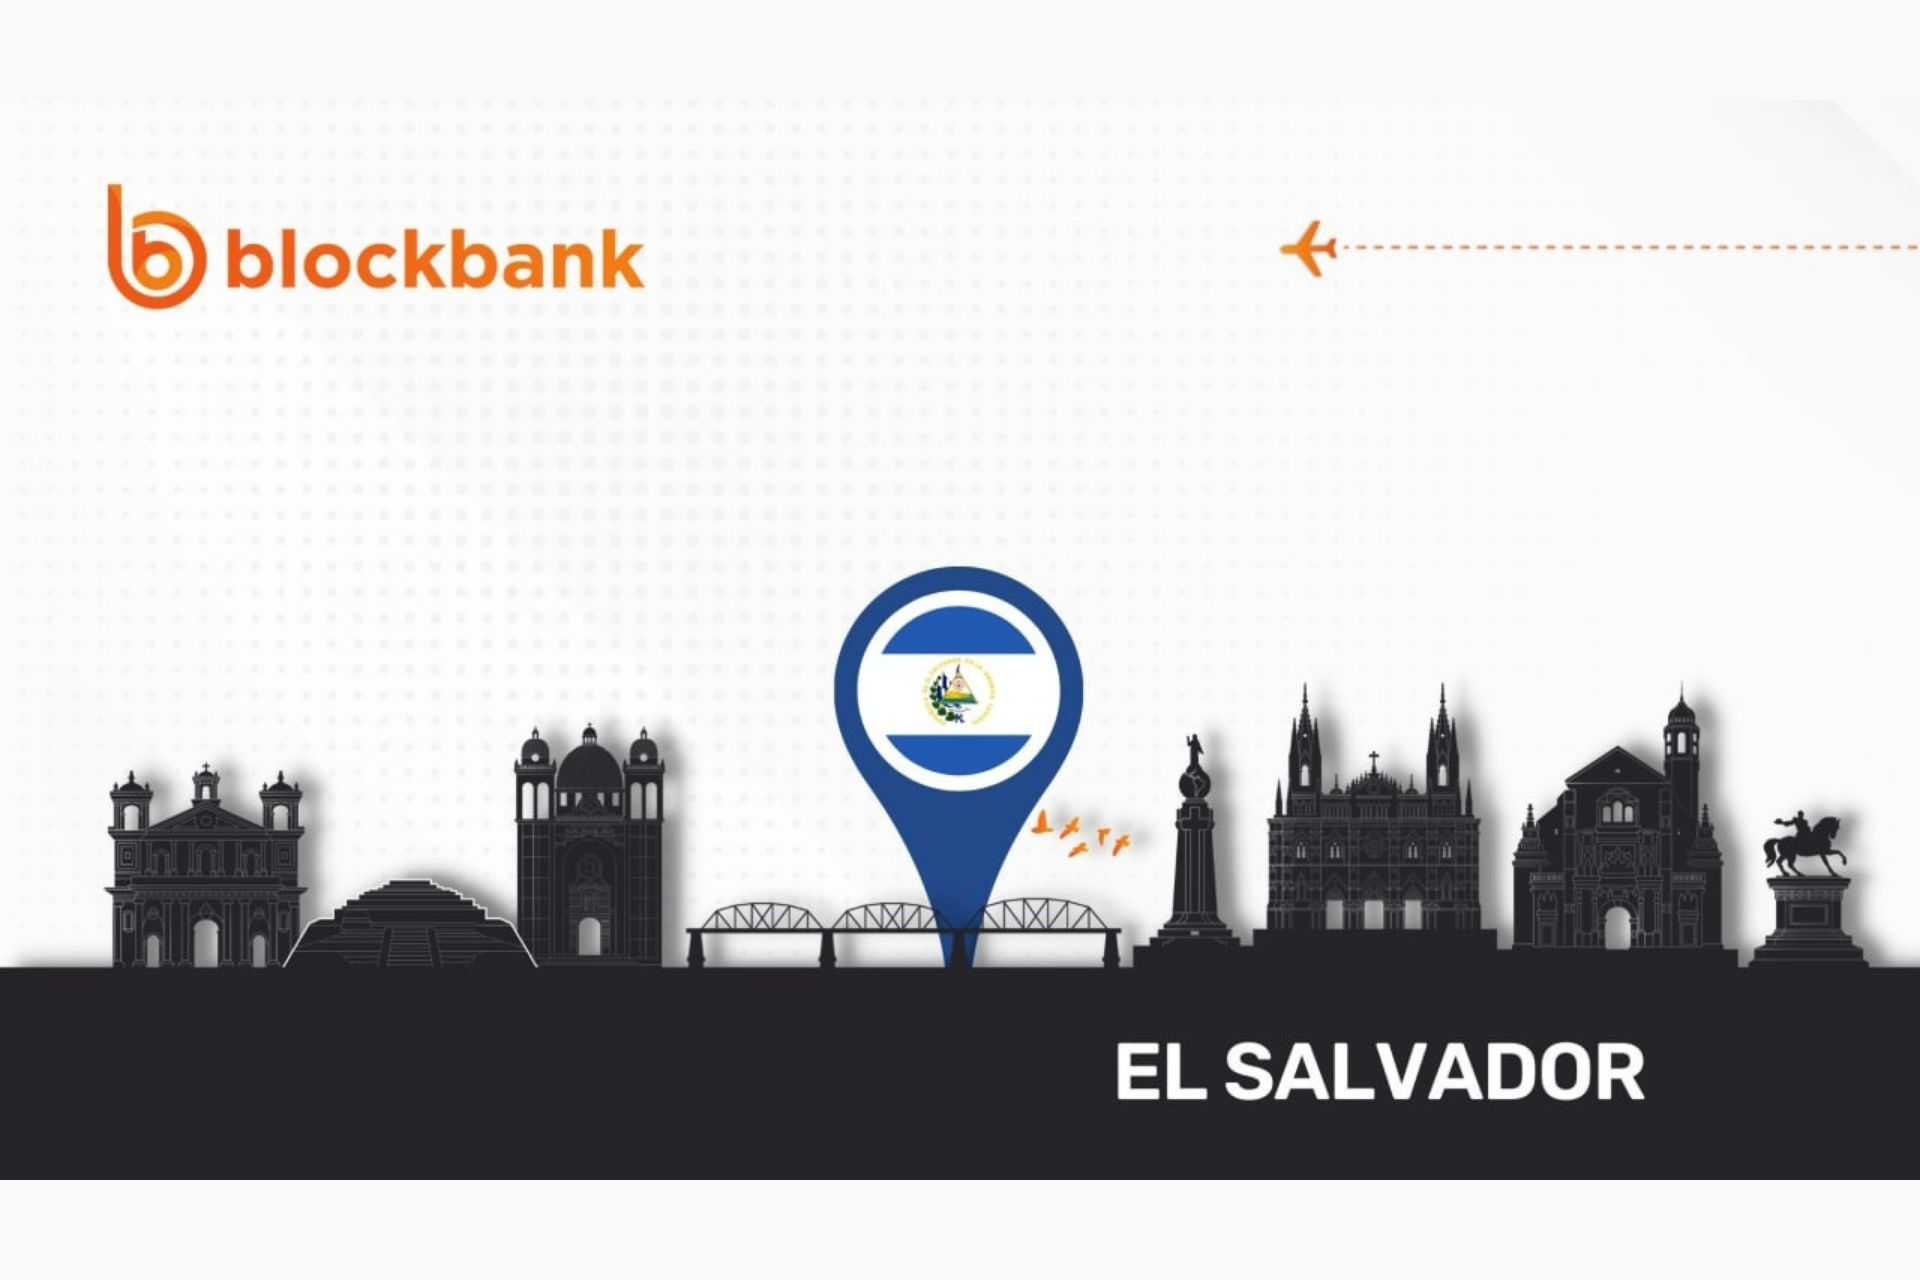 El Salvador | Witnessing a New Age of Economic System with Cryptocurrency